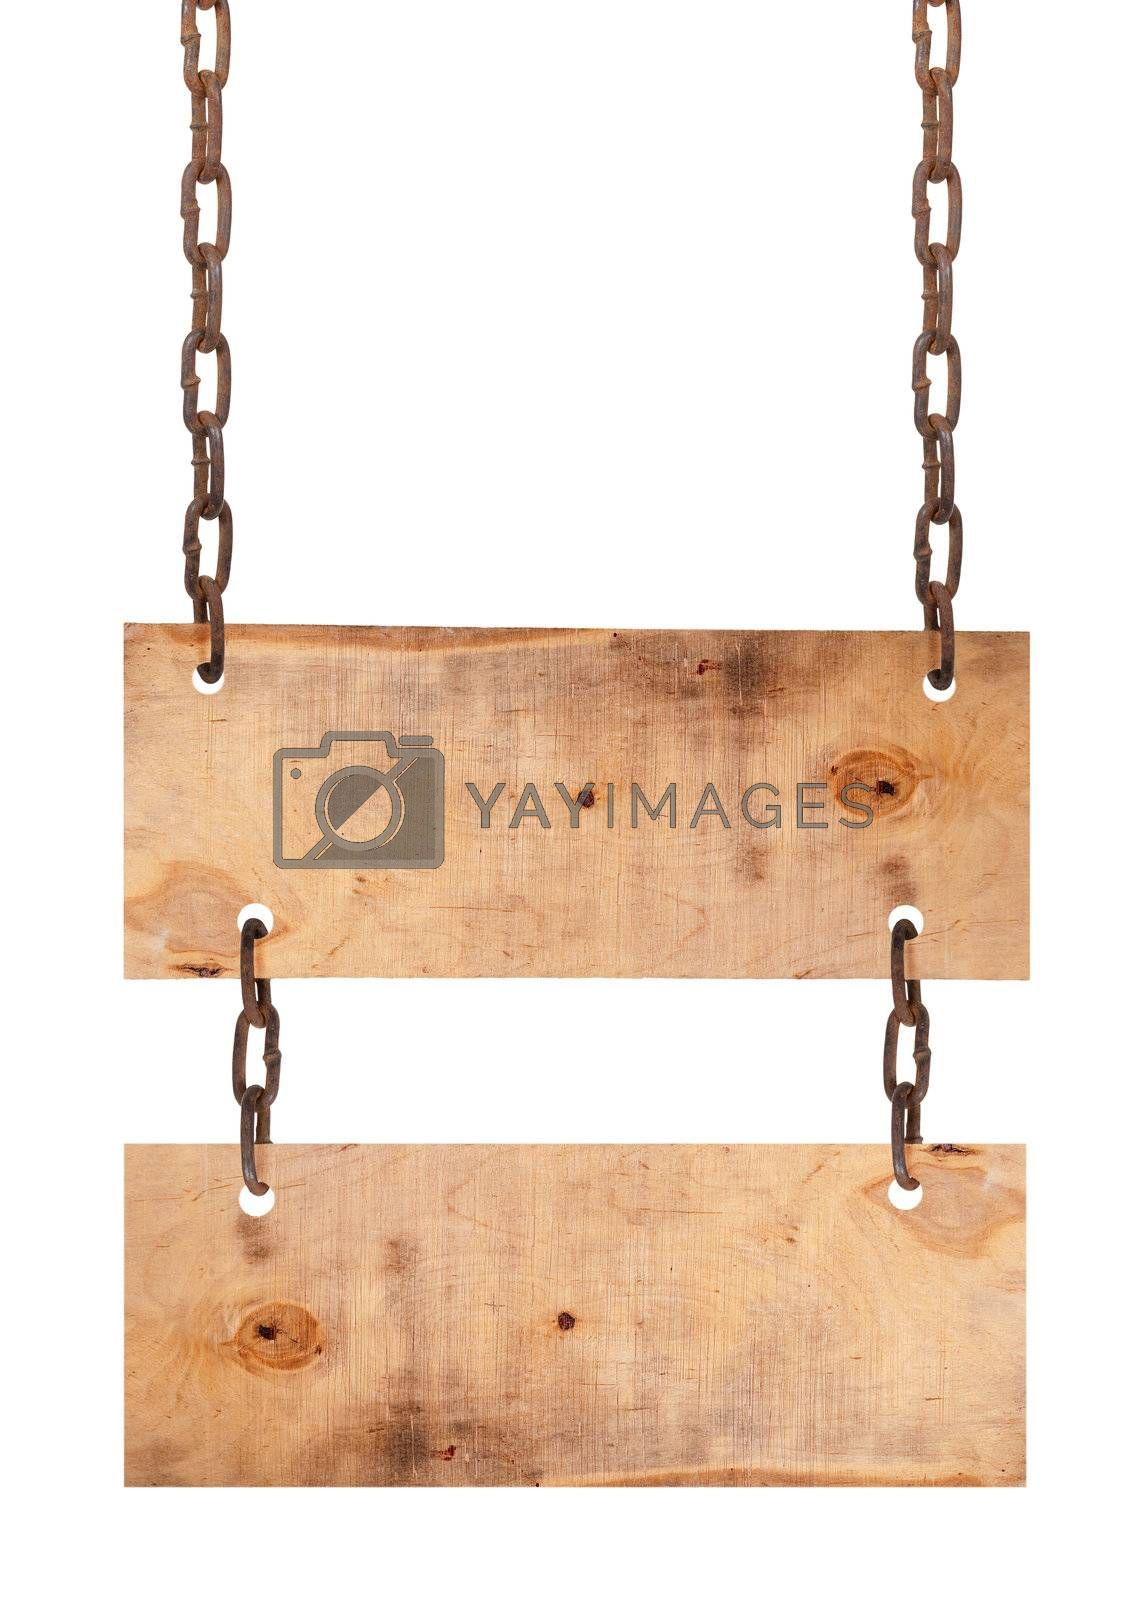 Wooden sign board with chains